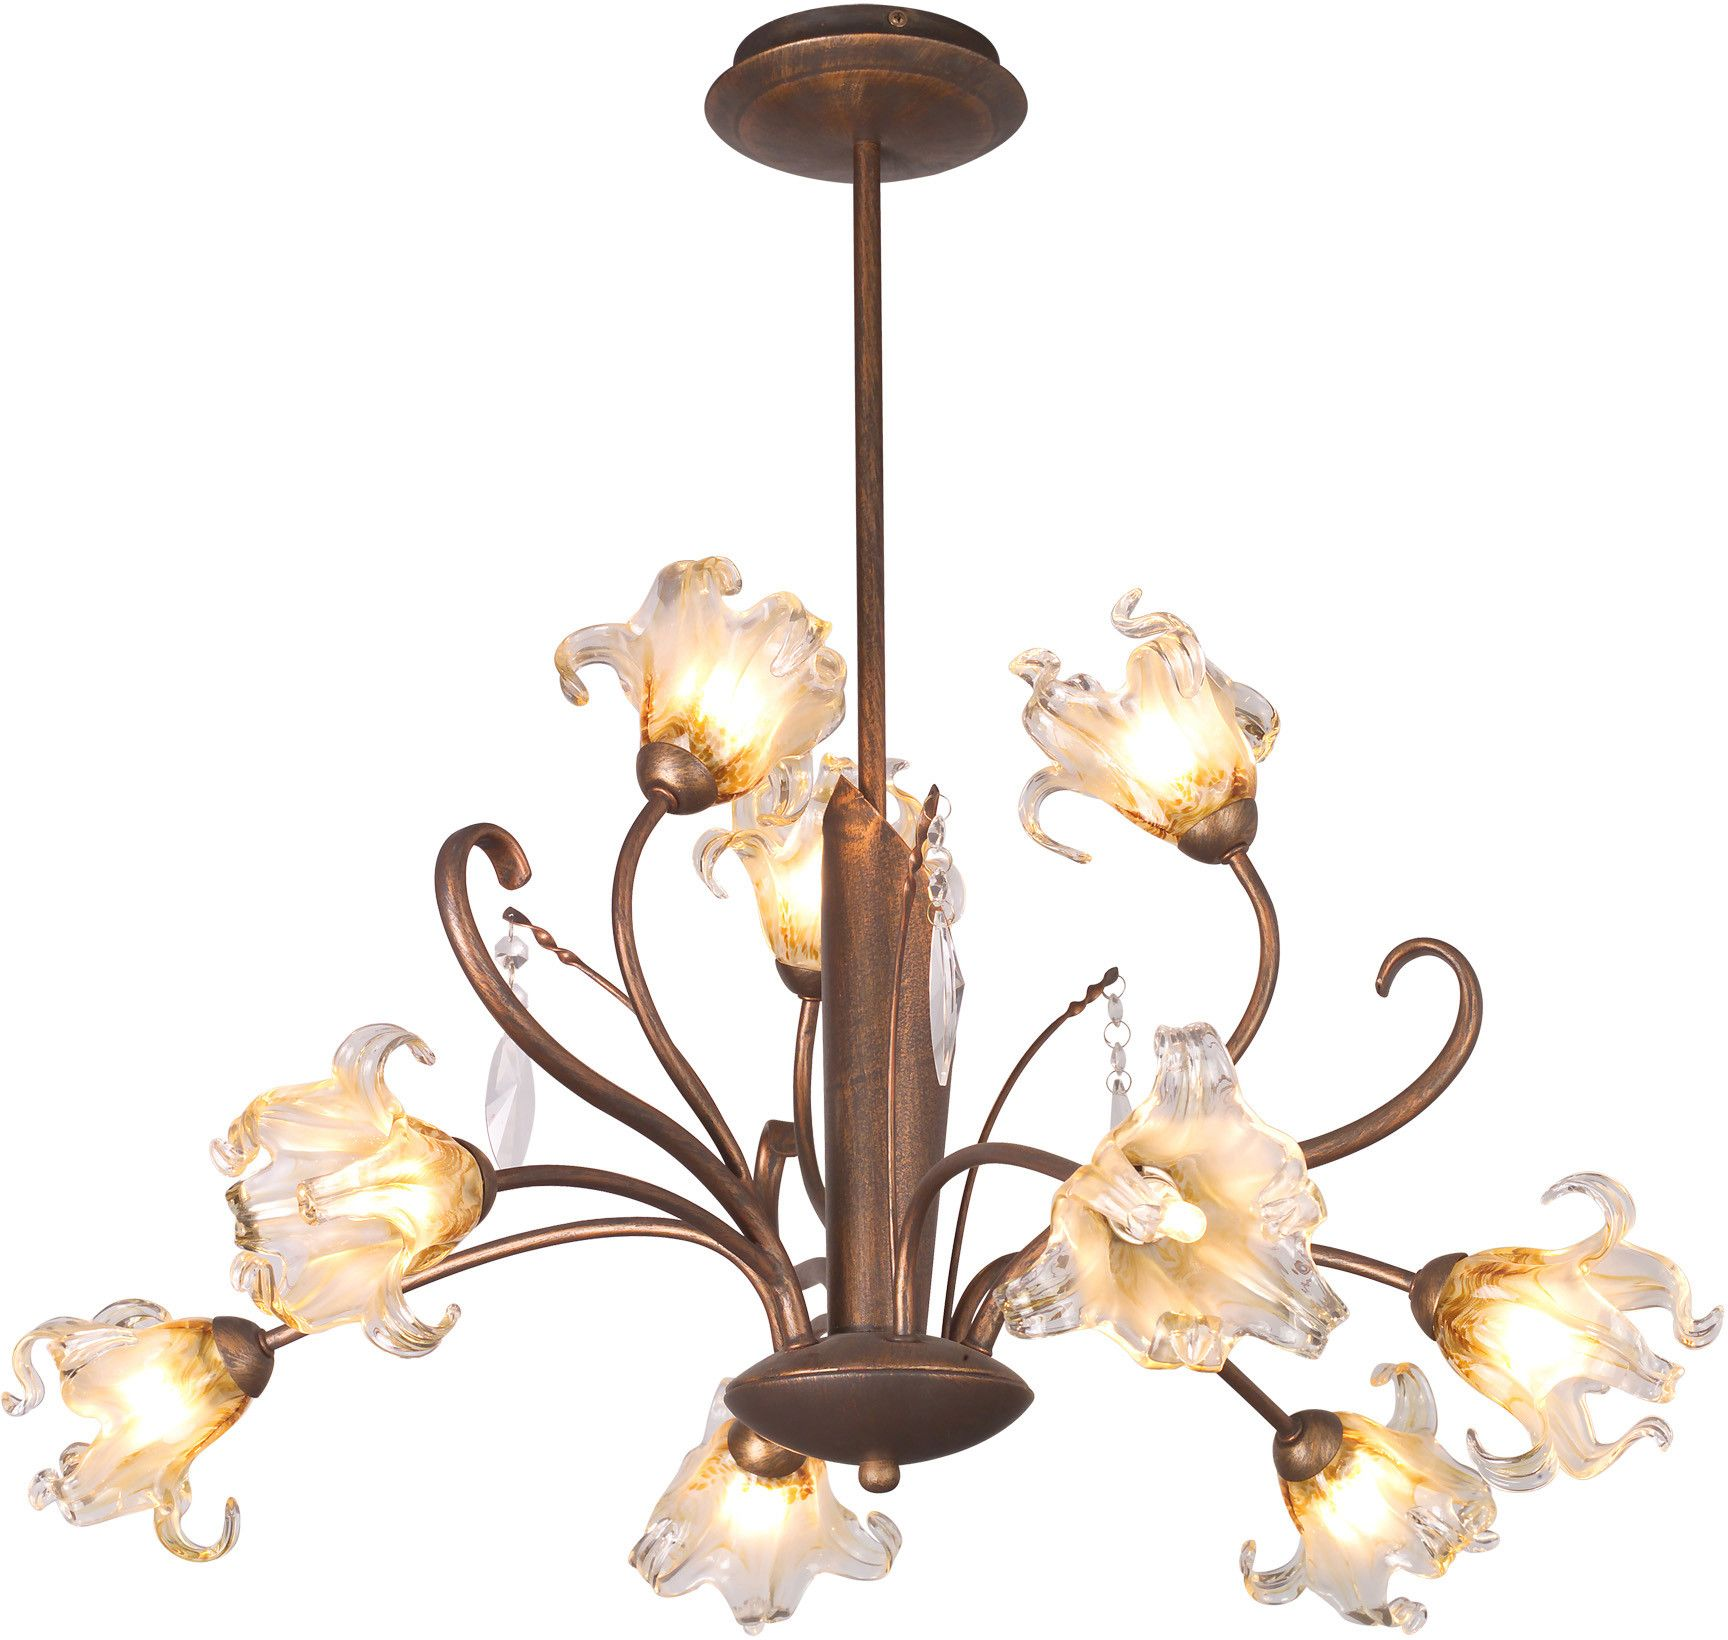 save on lighting. Sale Lighting Bloom Chandelier In Antique Bronze From The Original Bowery Lights. Shop Our Large Collection And Save On